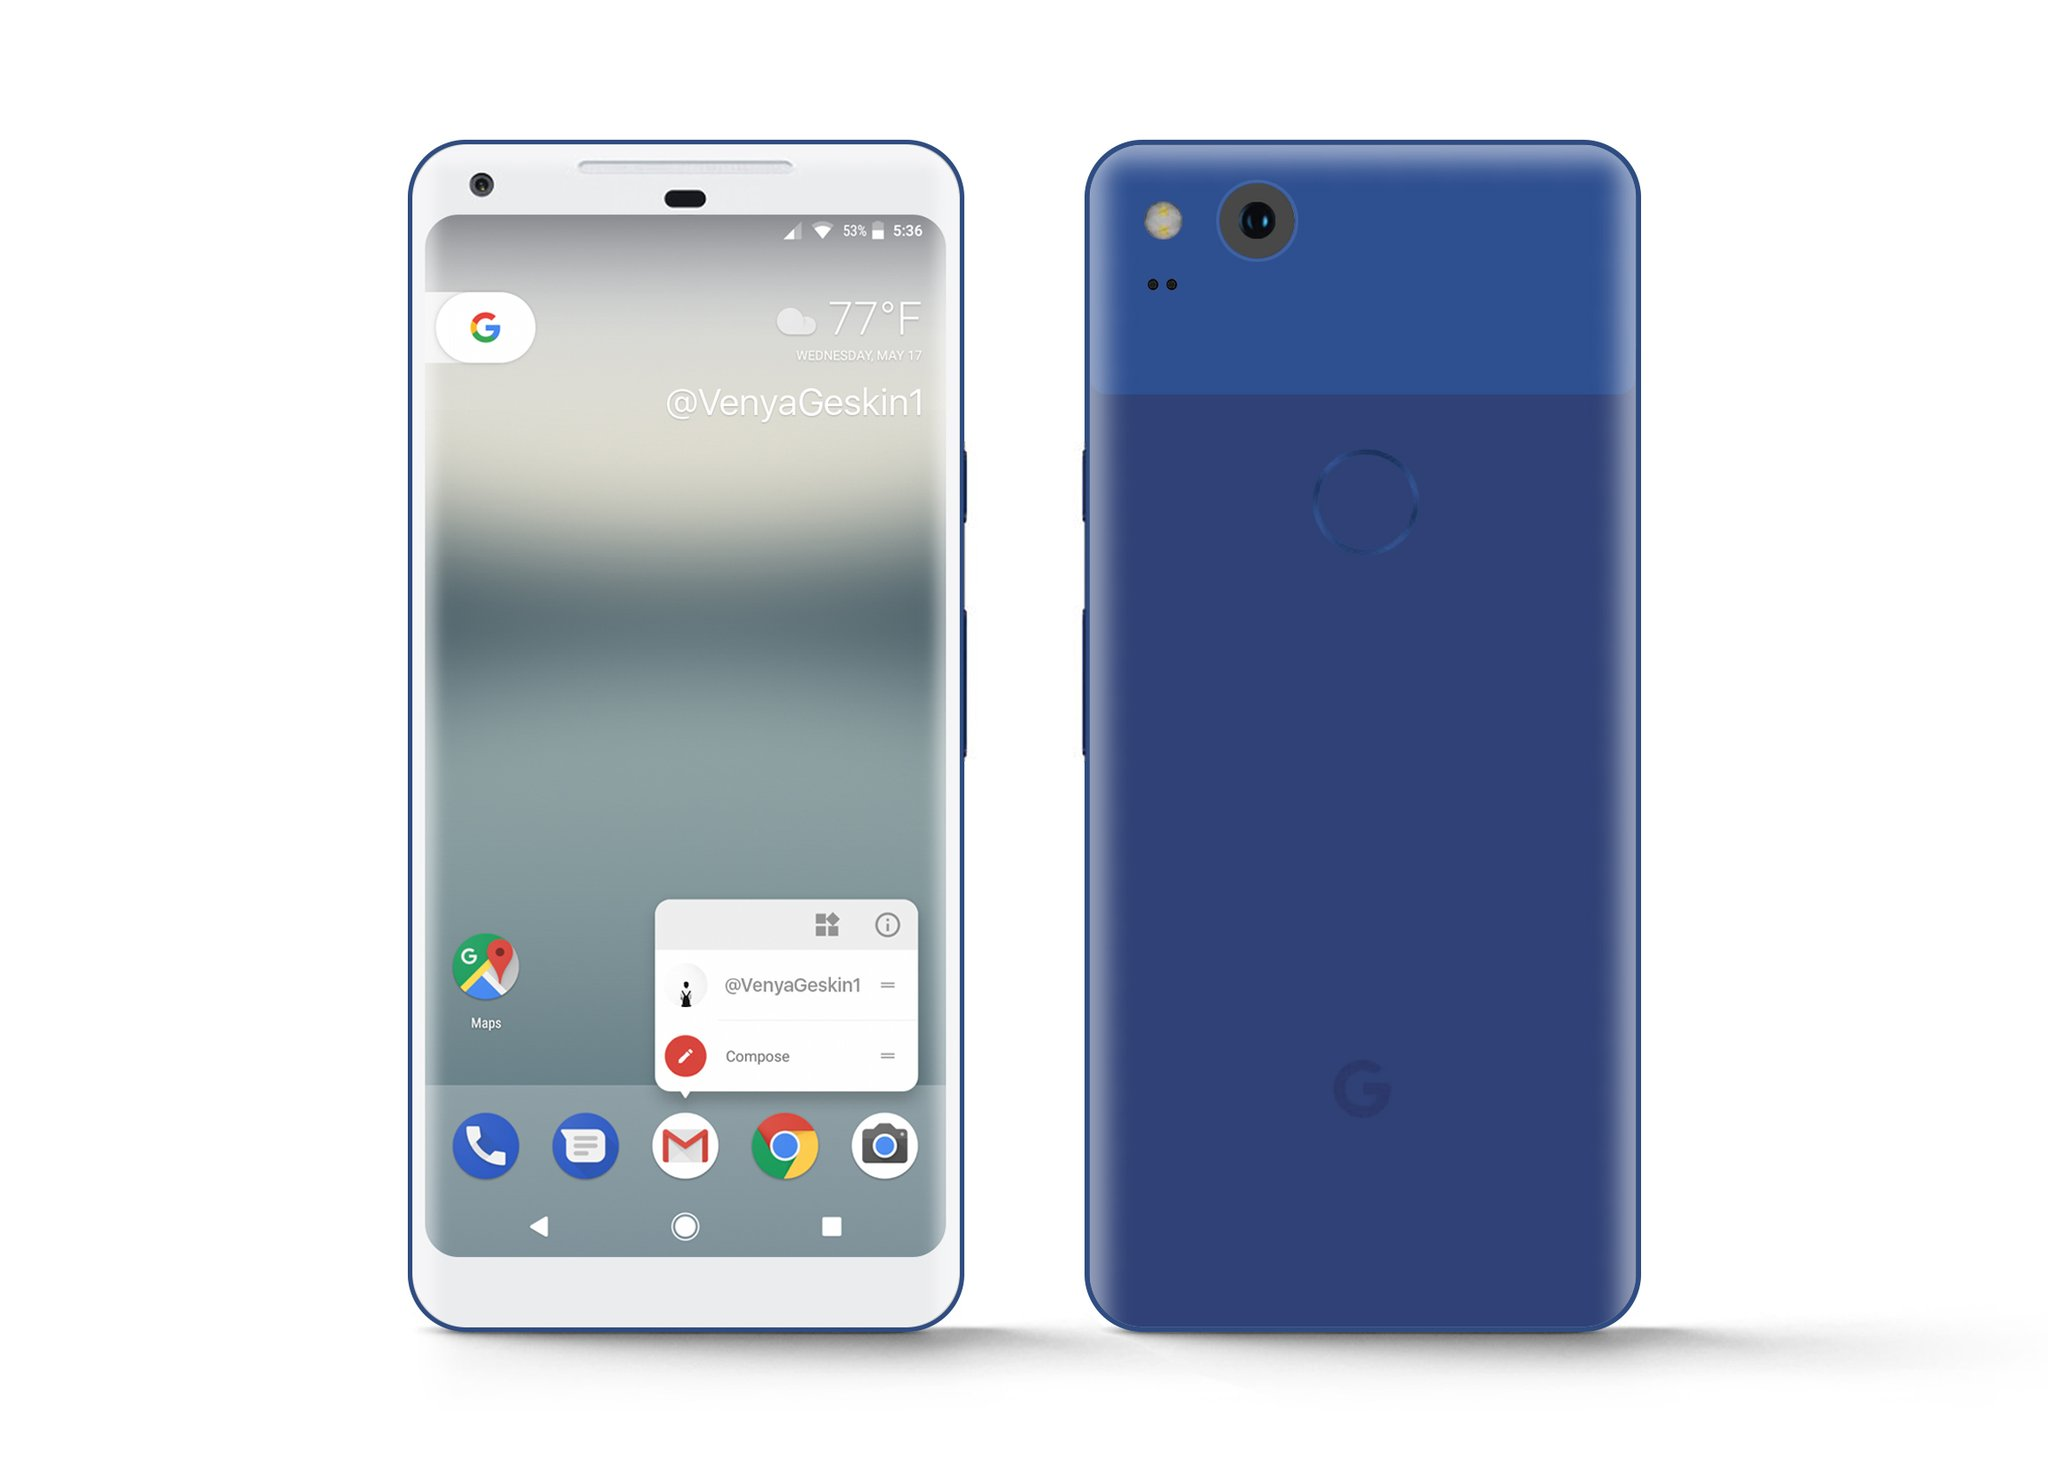 Behold the 2017 Google Pixel XL